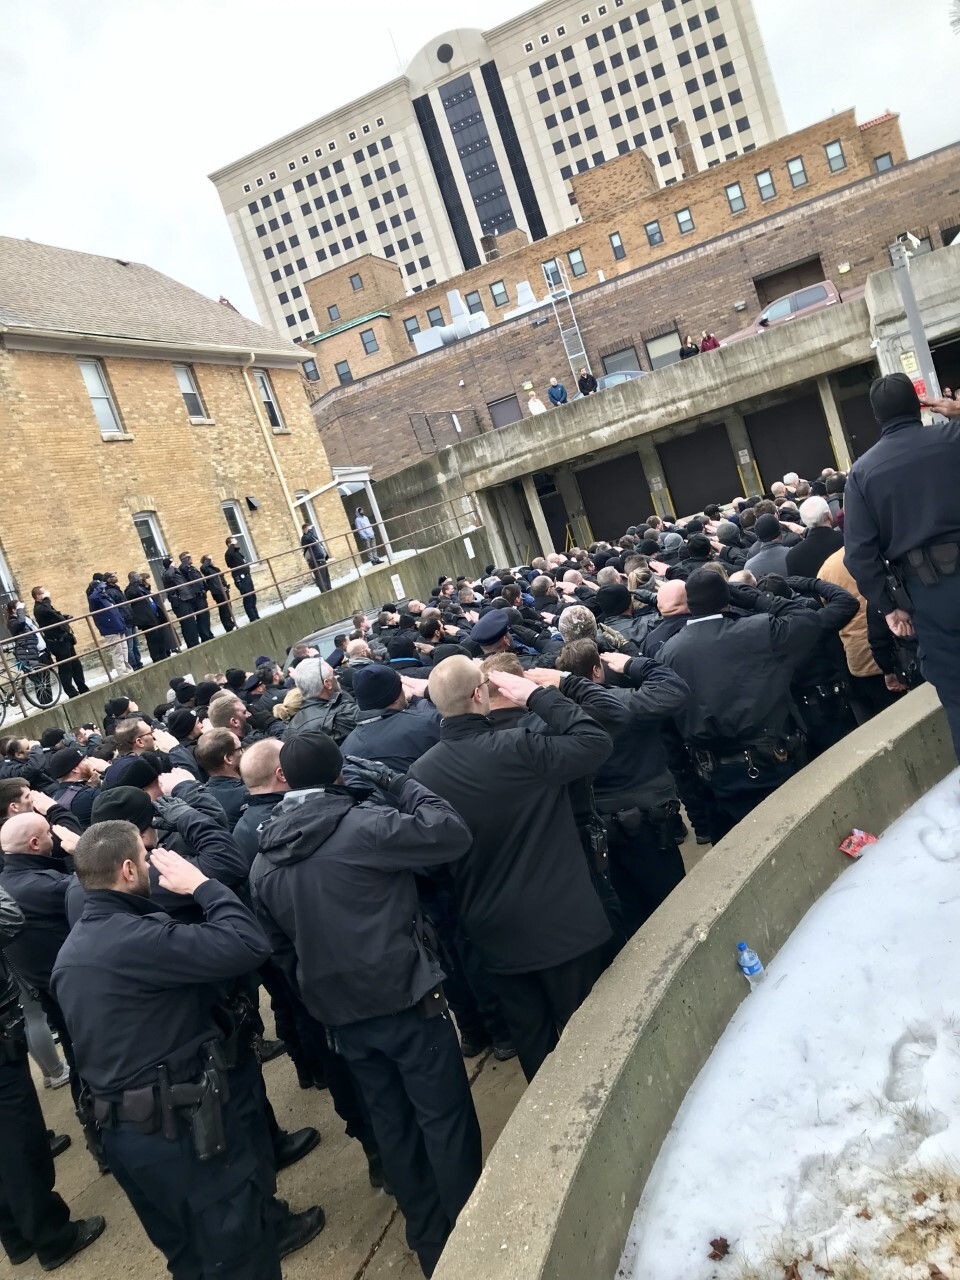 Officers salute as the procession for the fallen MPD officer ends outside the Medical Examiner's Office.